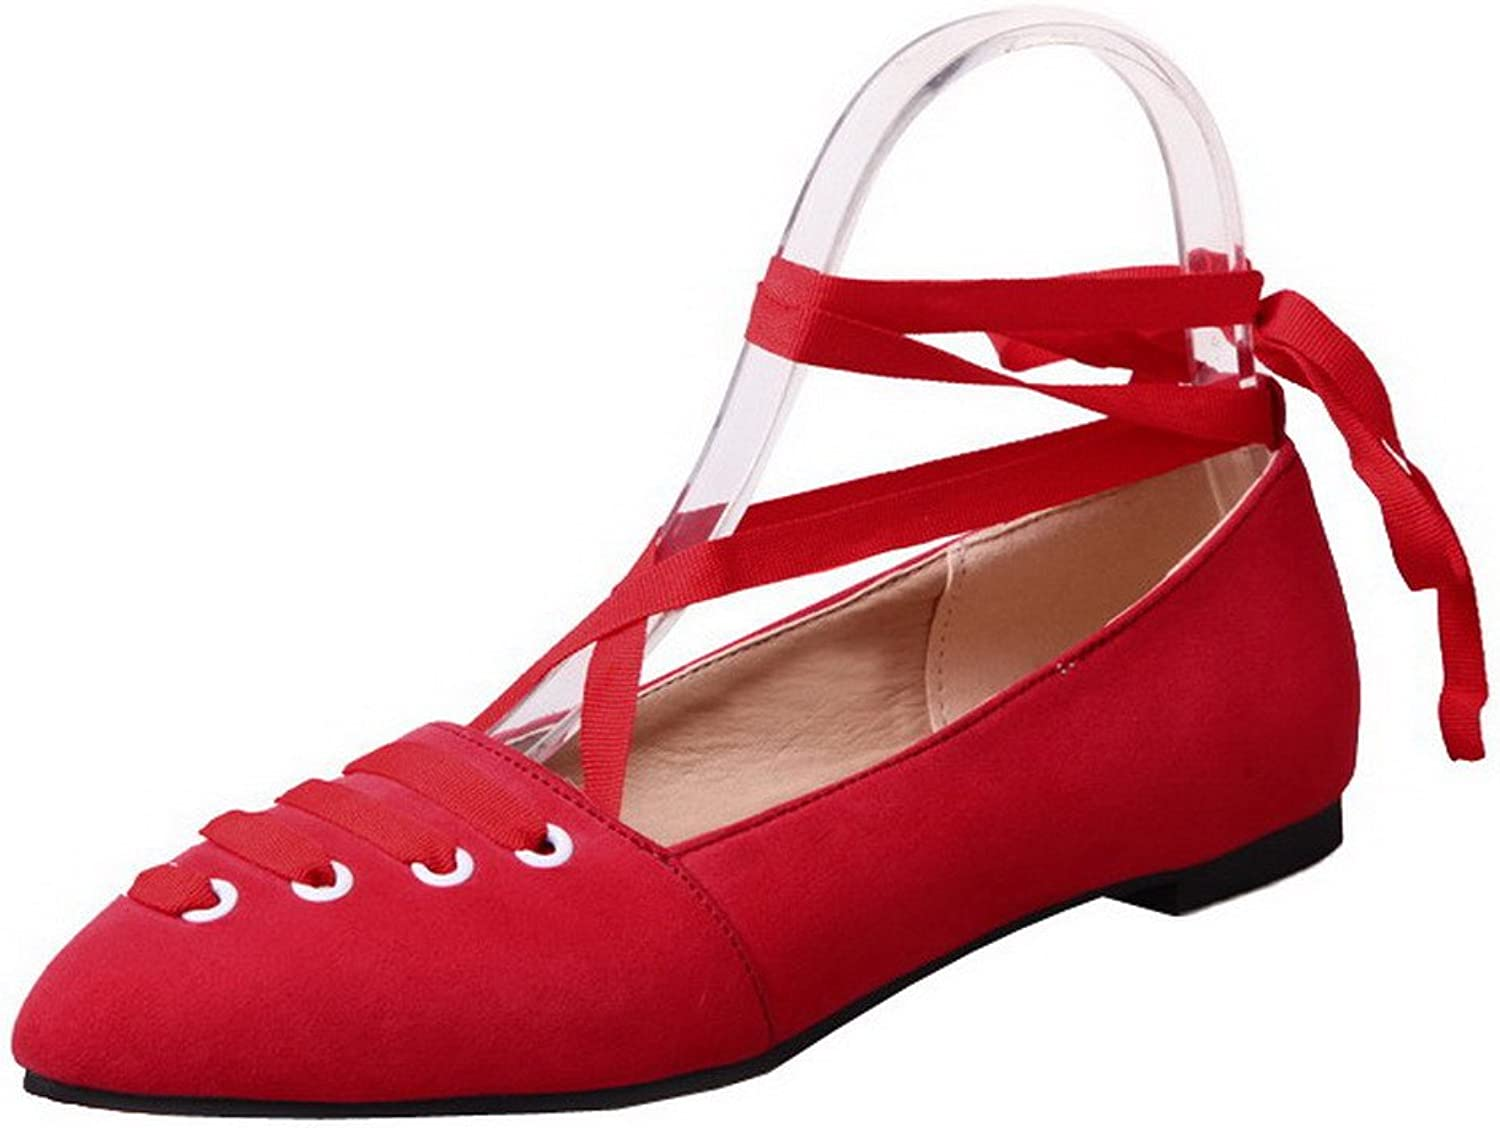 WeenFashion Women's Frosted Low-Heels Closed-Toe Solid Lace-up Pumps-shoes